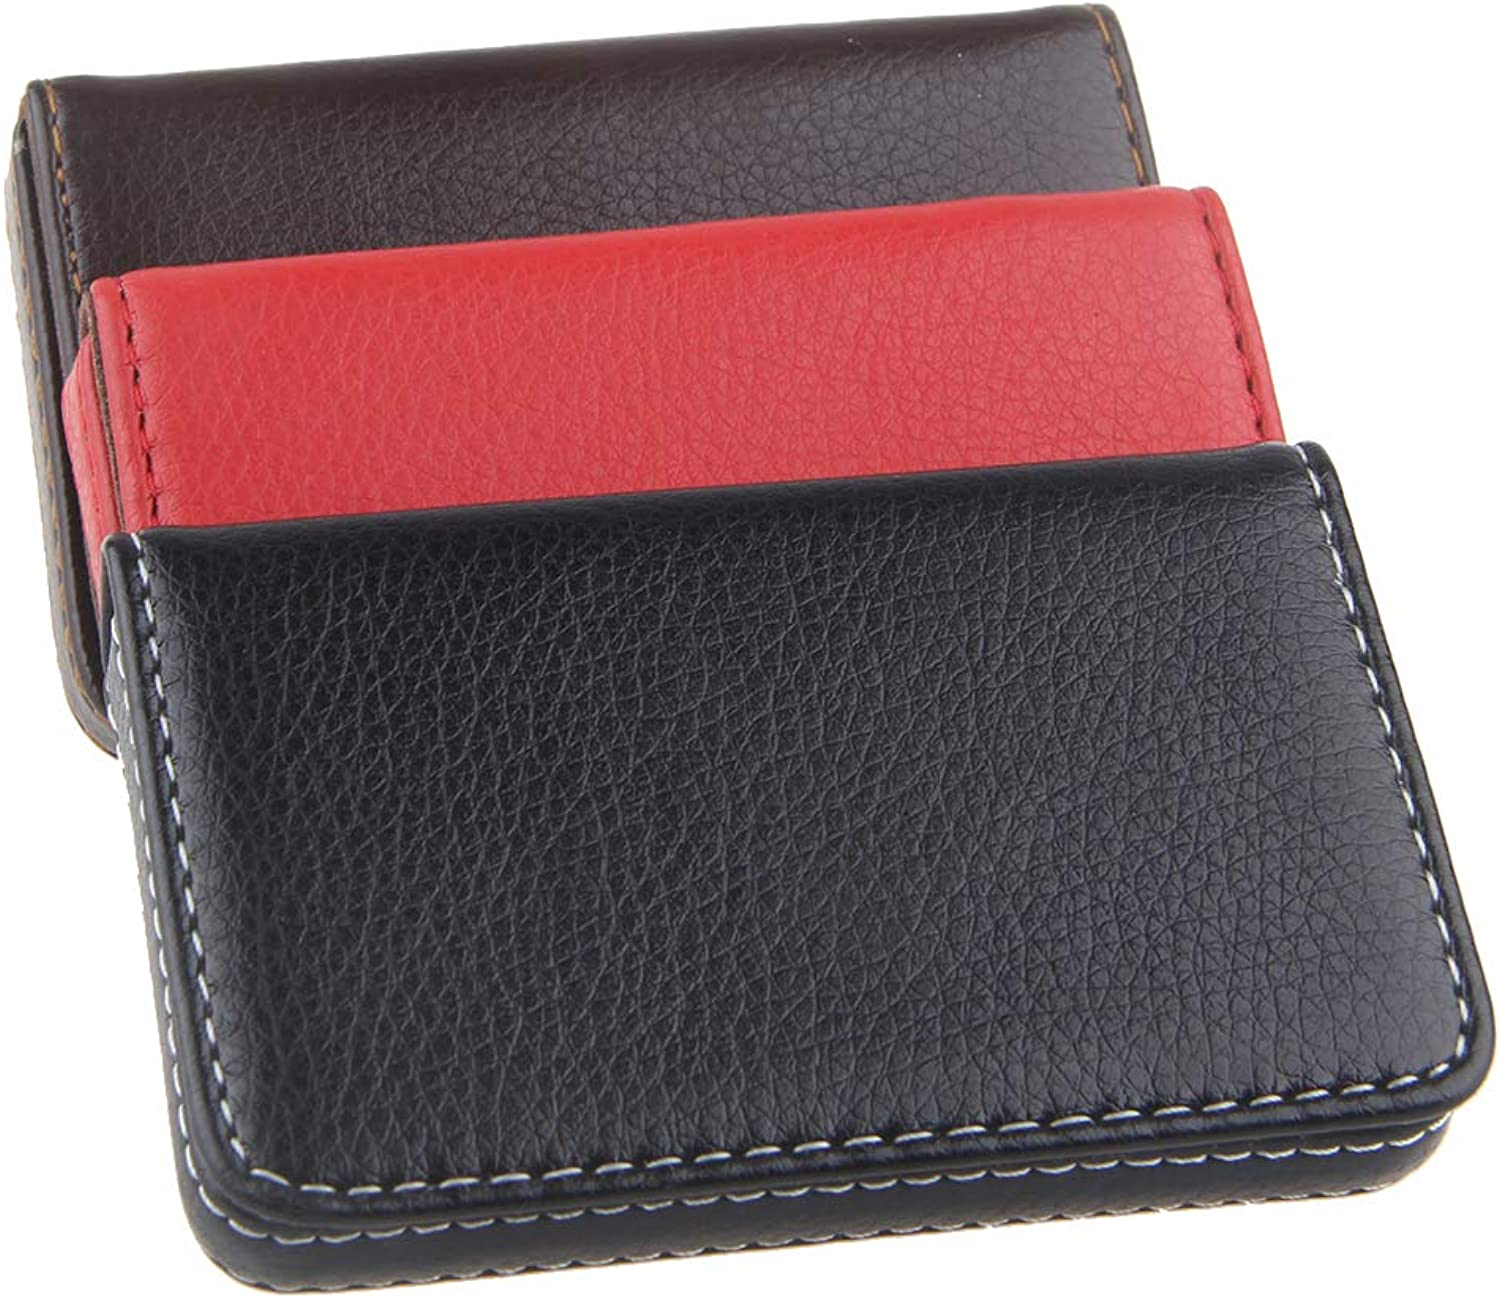 ECOSCO PU Leather Stainless Steel Slim Professional Business Cards Holder Case Assorts (T3pcs)